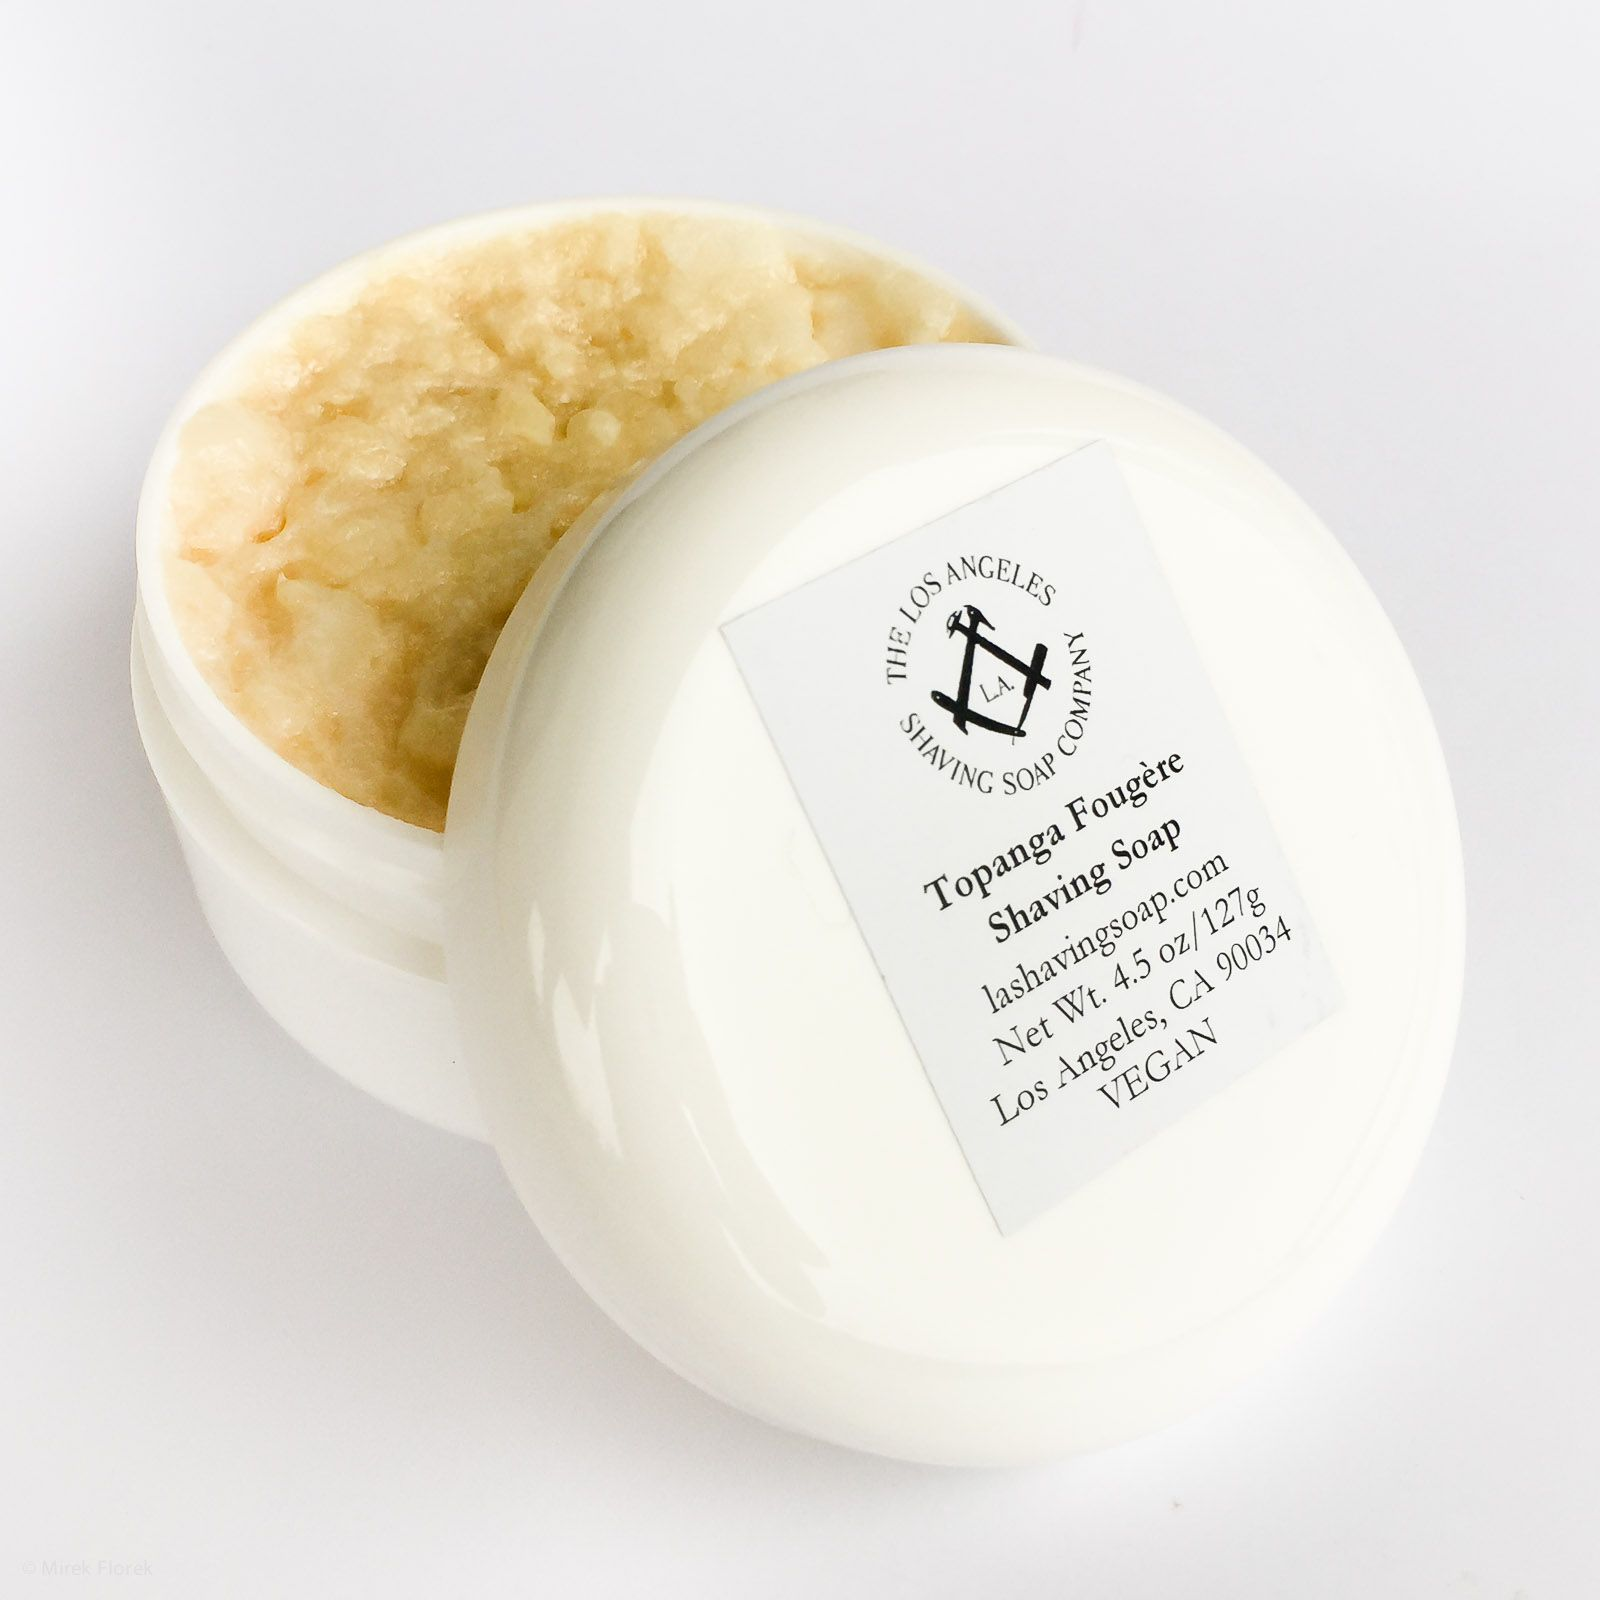 You are currently viewing Los Angeles Topanga Fougère Shaving Soap – recenzja mydła do golenia